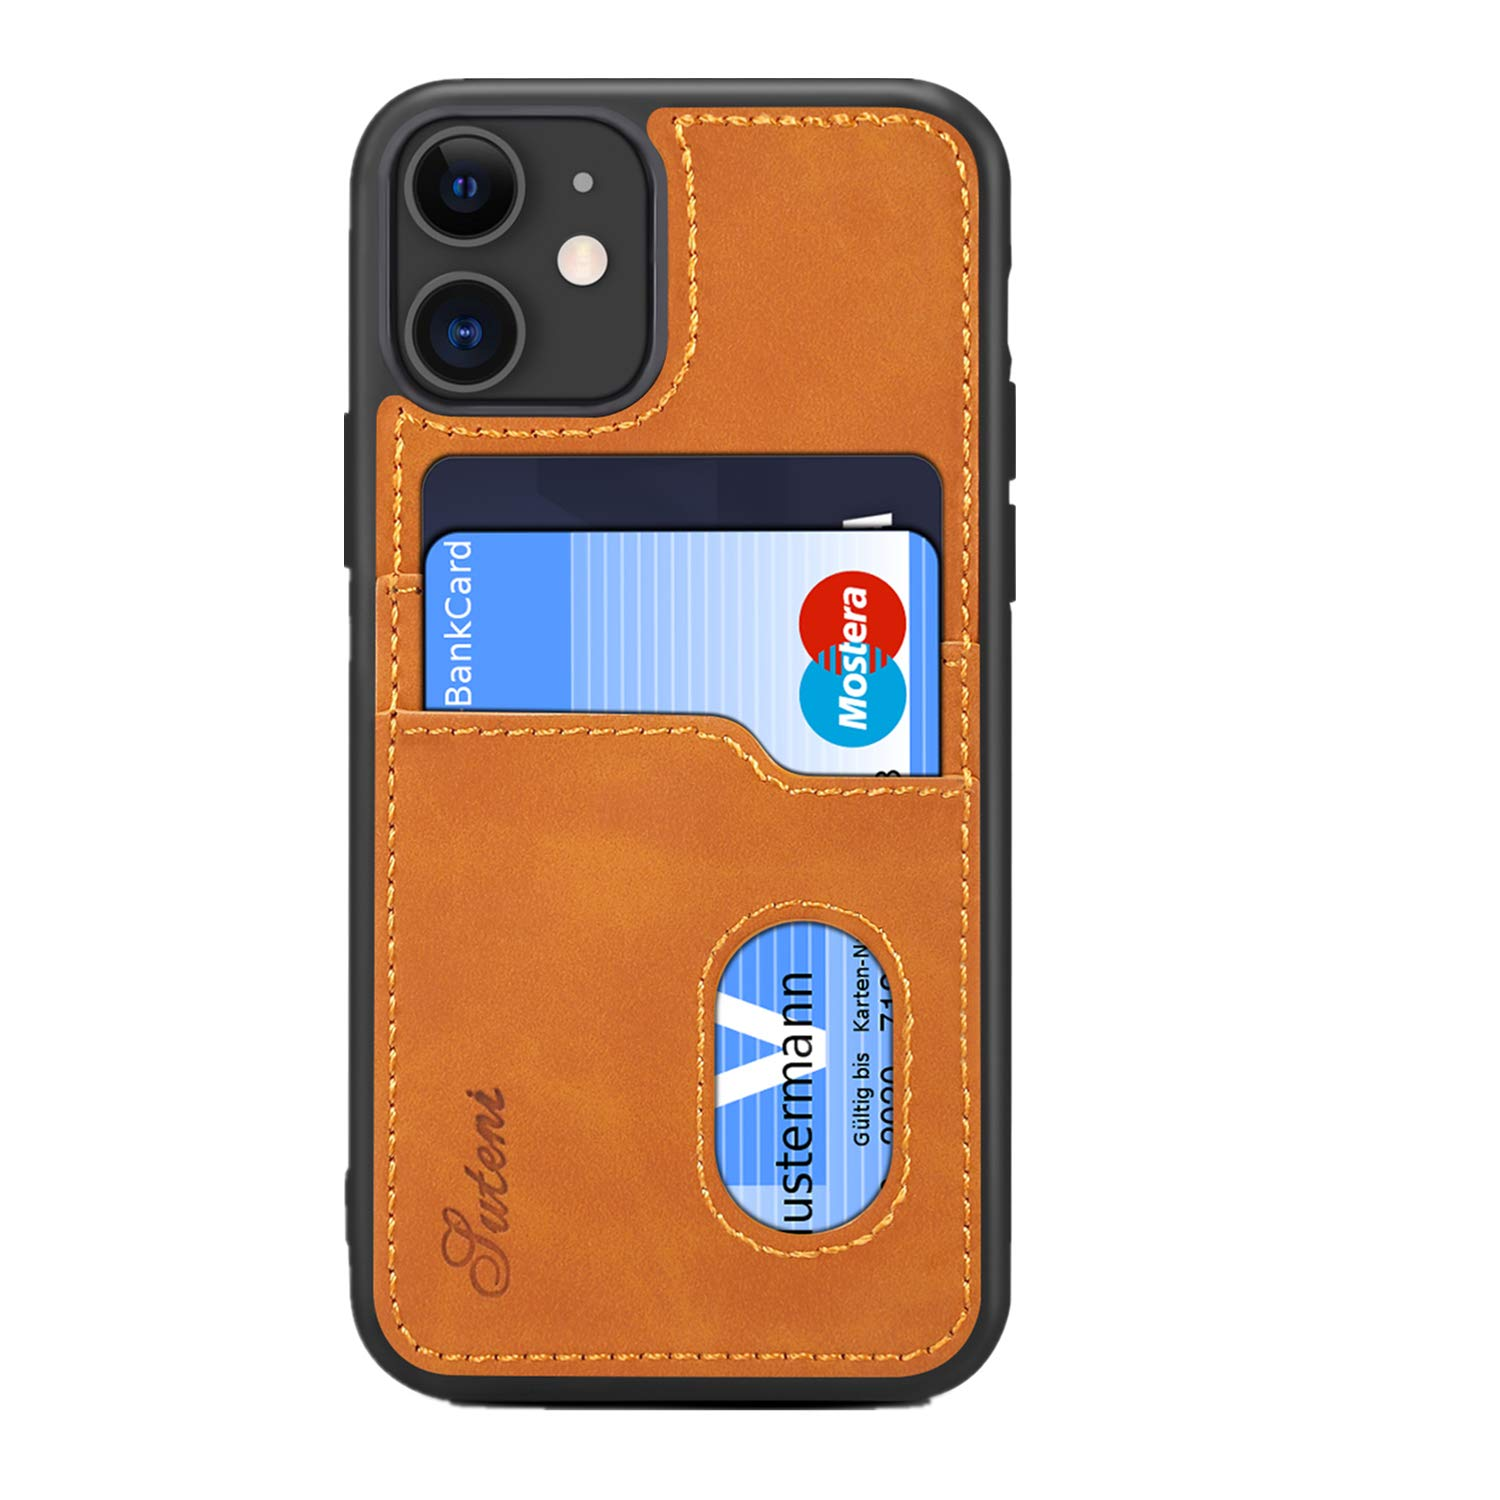 SUTENI iPhone 11 Wallet Case, iPhone 11 Wallet Slim Case with Credit Card Holder, PU Leather Shockproof Wallet Case for iPhone 11 (2019) 6.1 inch (Brown)